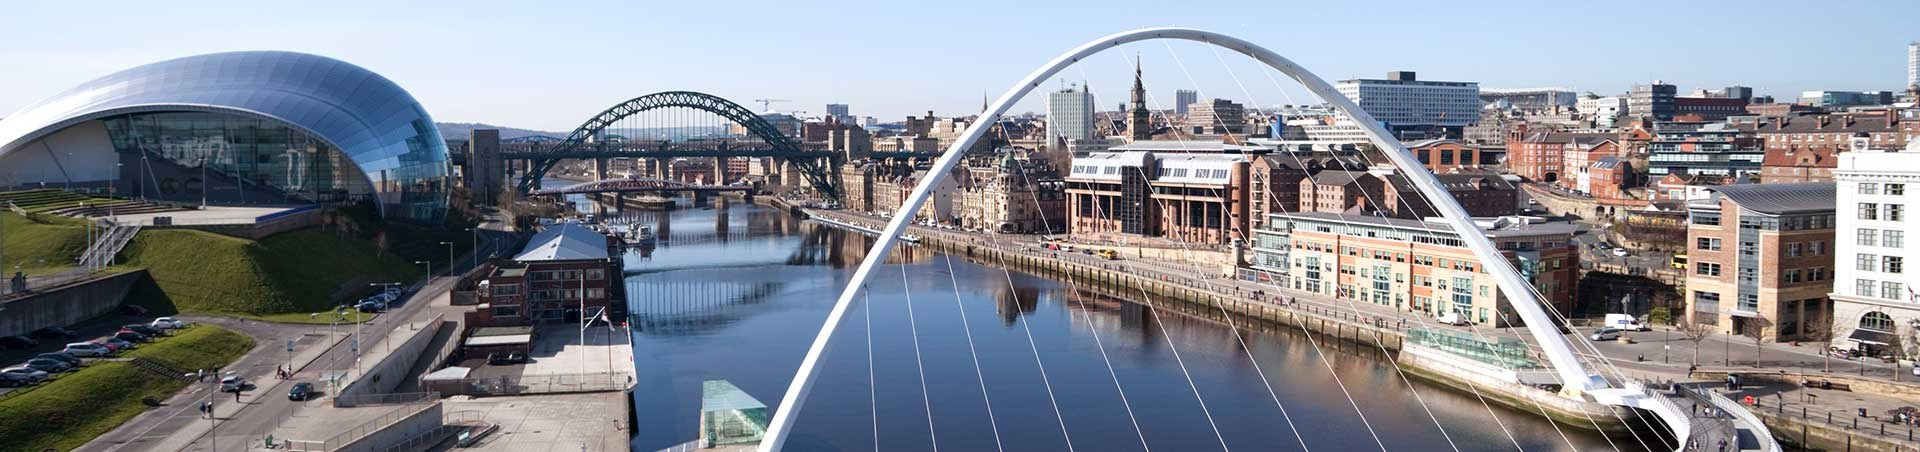 Gateshead Millennium Bridge, Newcastle